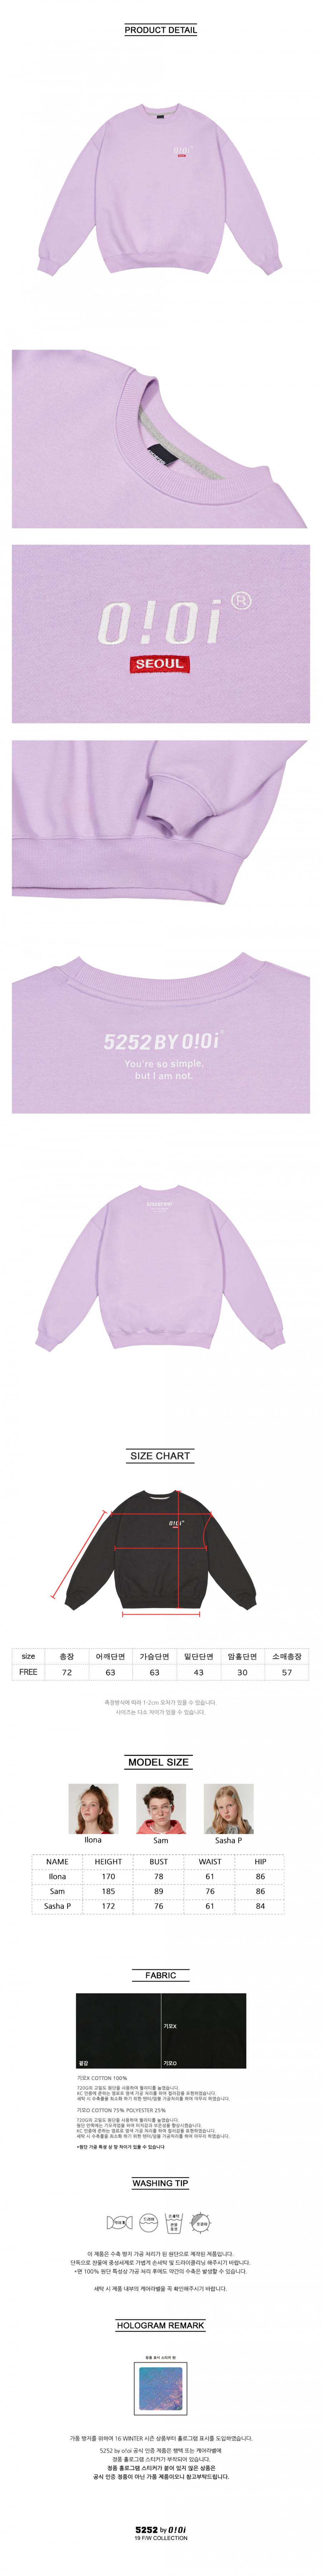 5252 바이 오아이오아이(5252BYOIOI) 2019 SIDE LOGO JUMPER_light purple